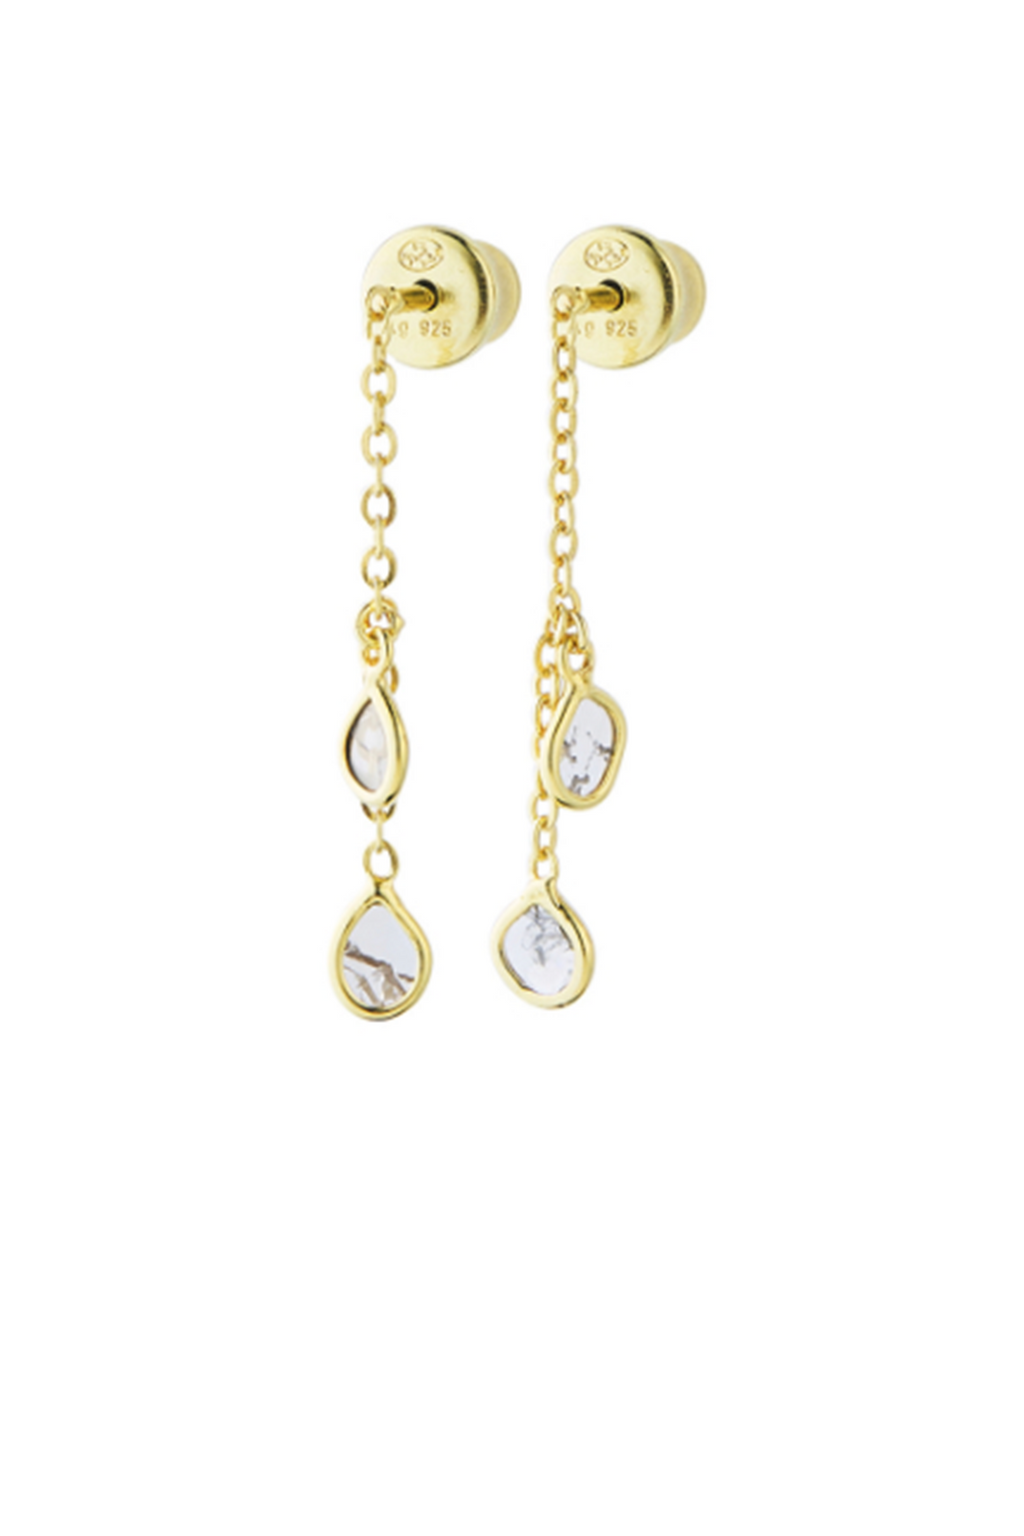 Marie Laure Chamorel Gold & Crystal Tear Drop Earrings